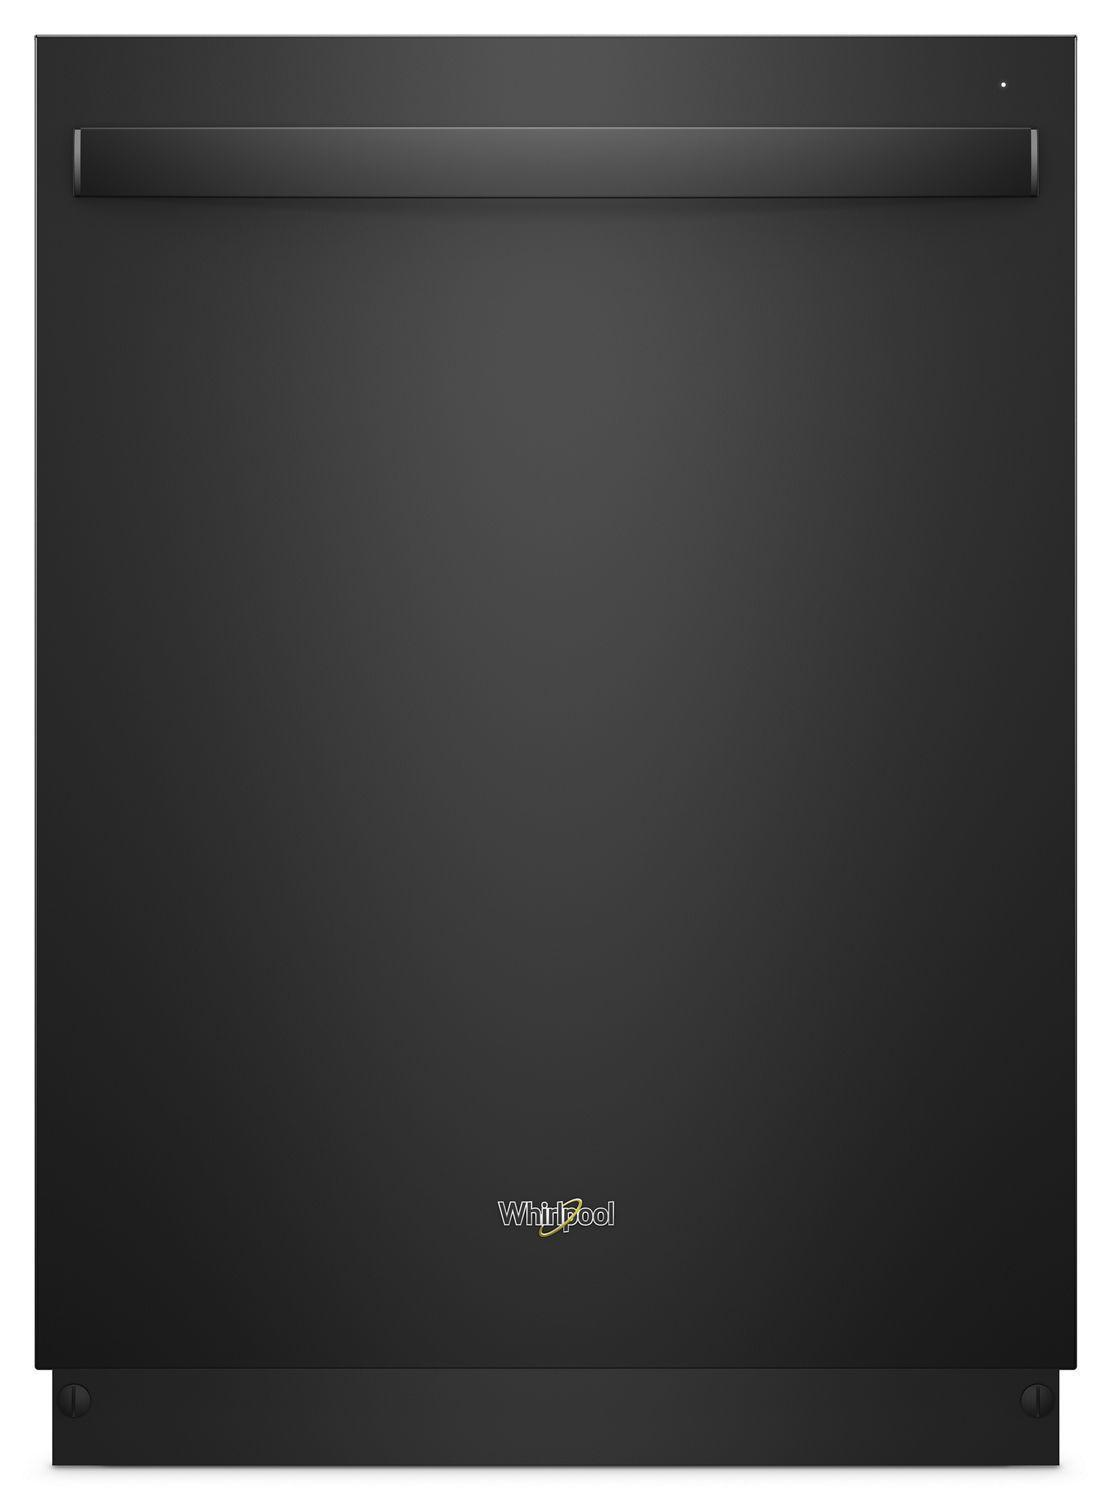 WhirlpoolStainless Steel Tub Dishwasher With Third Level Rack Black